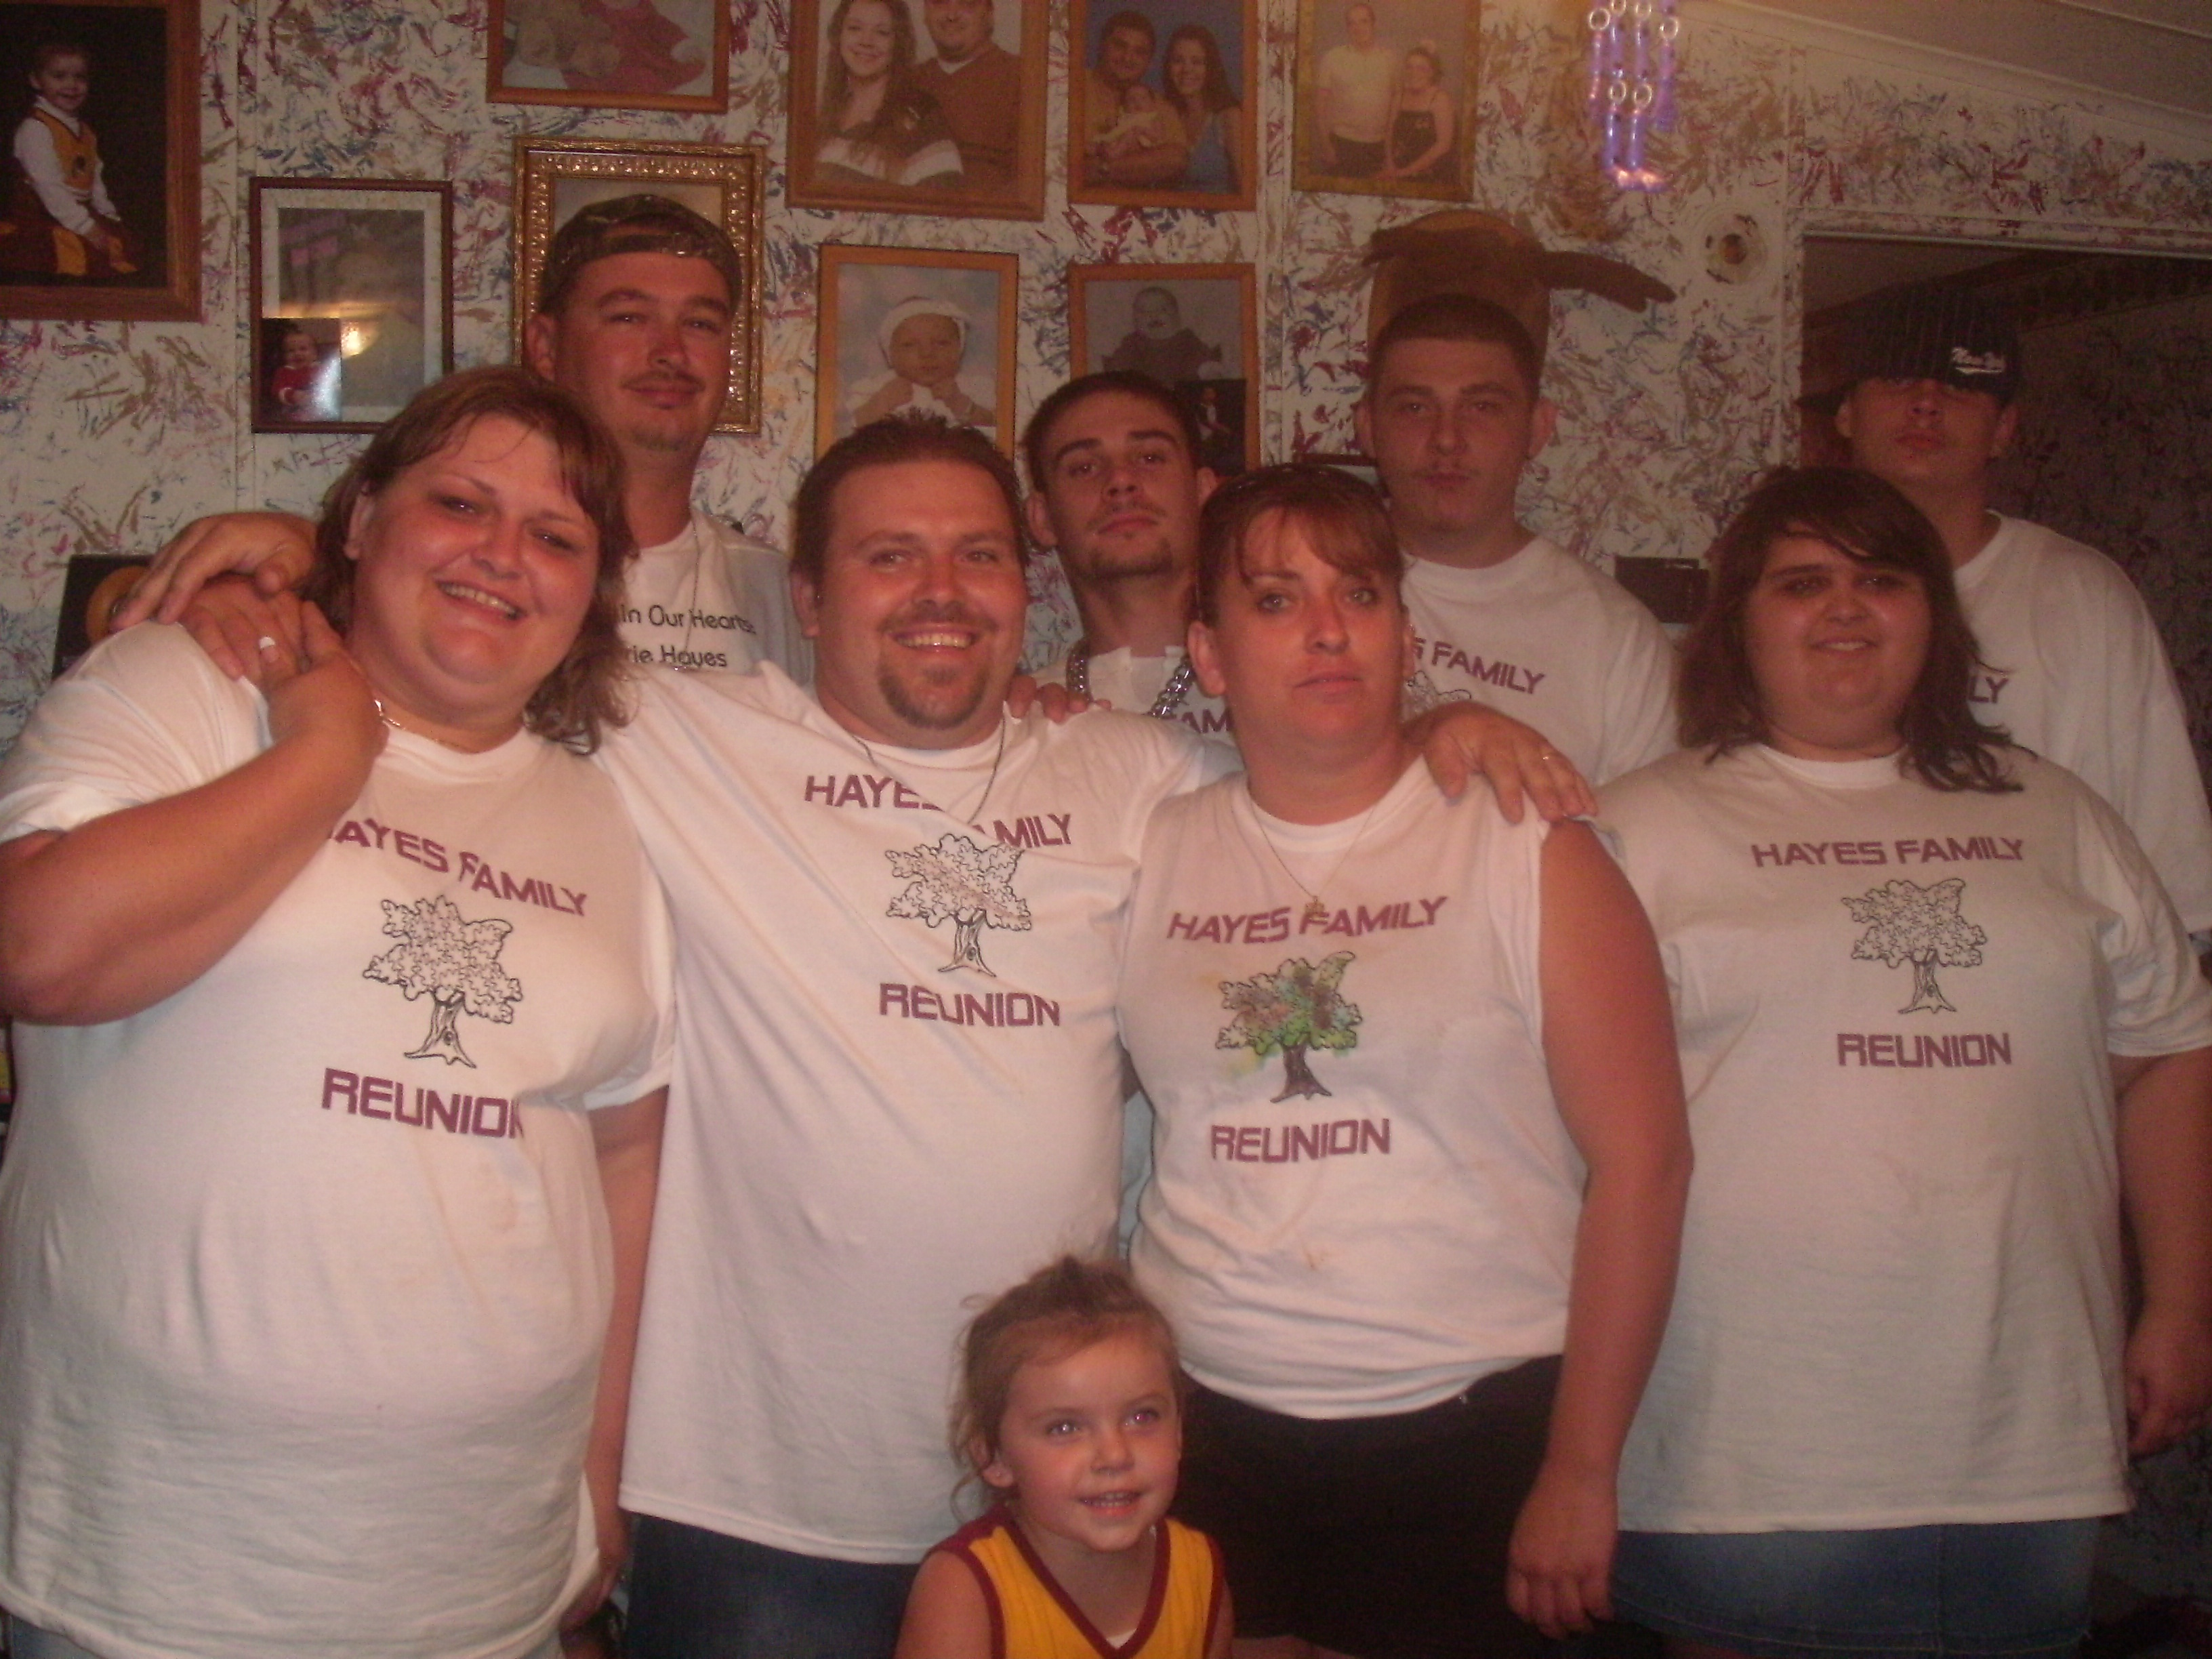 Design your own t-shirt for family reunion - Hayes Family Reunion T Shirt Photo